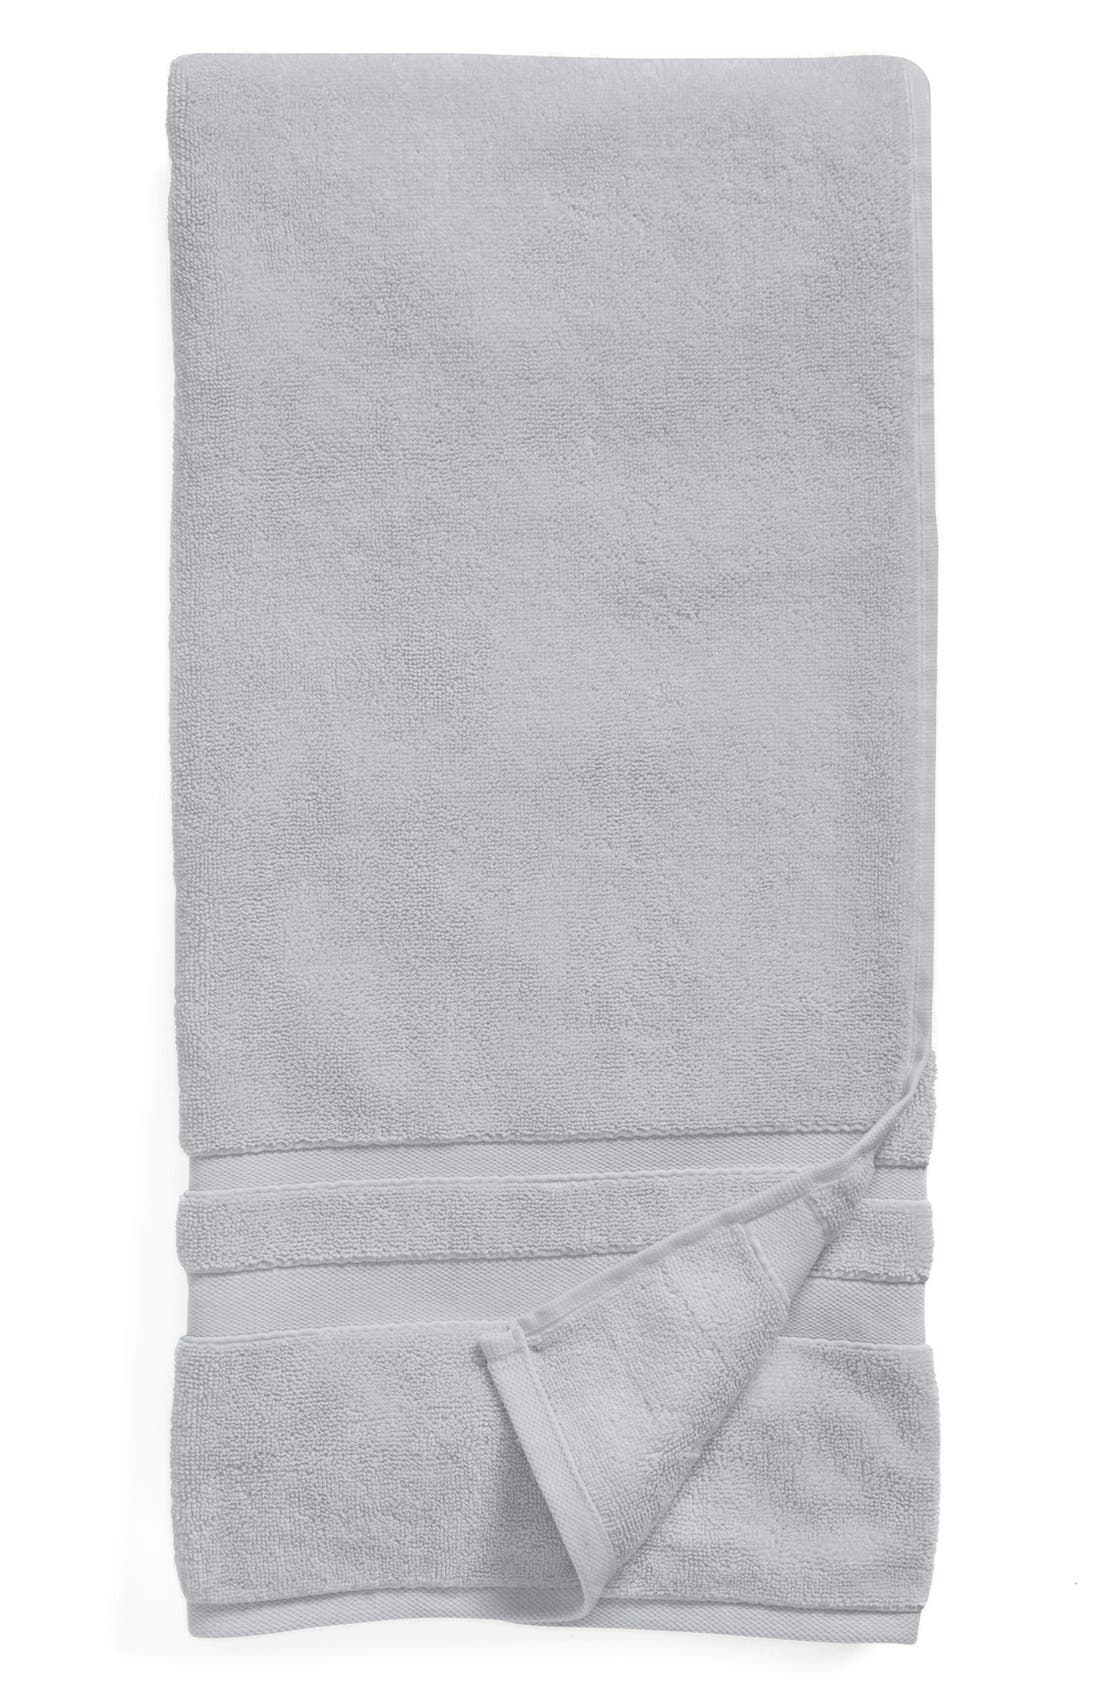 Waterworks Studio 'Perennial' Turkish Cotton Bath Sheet (Online Only)